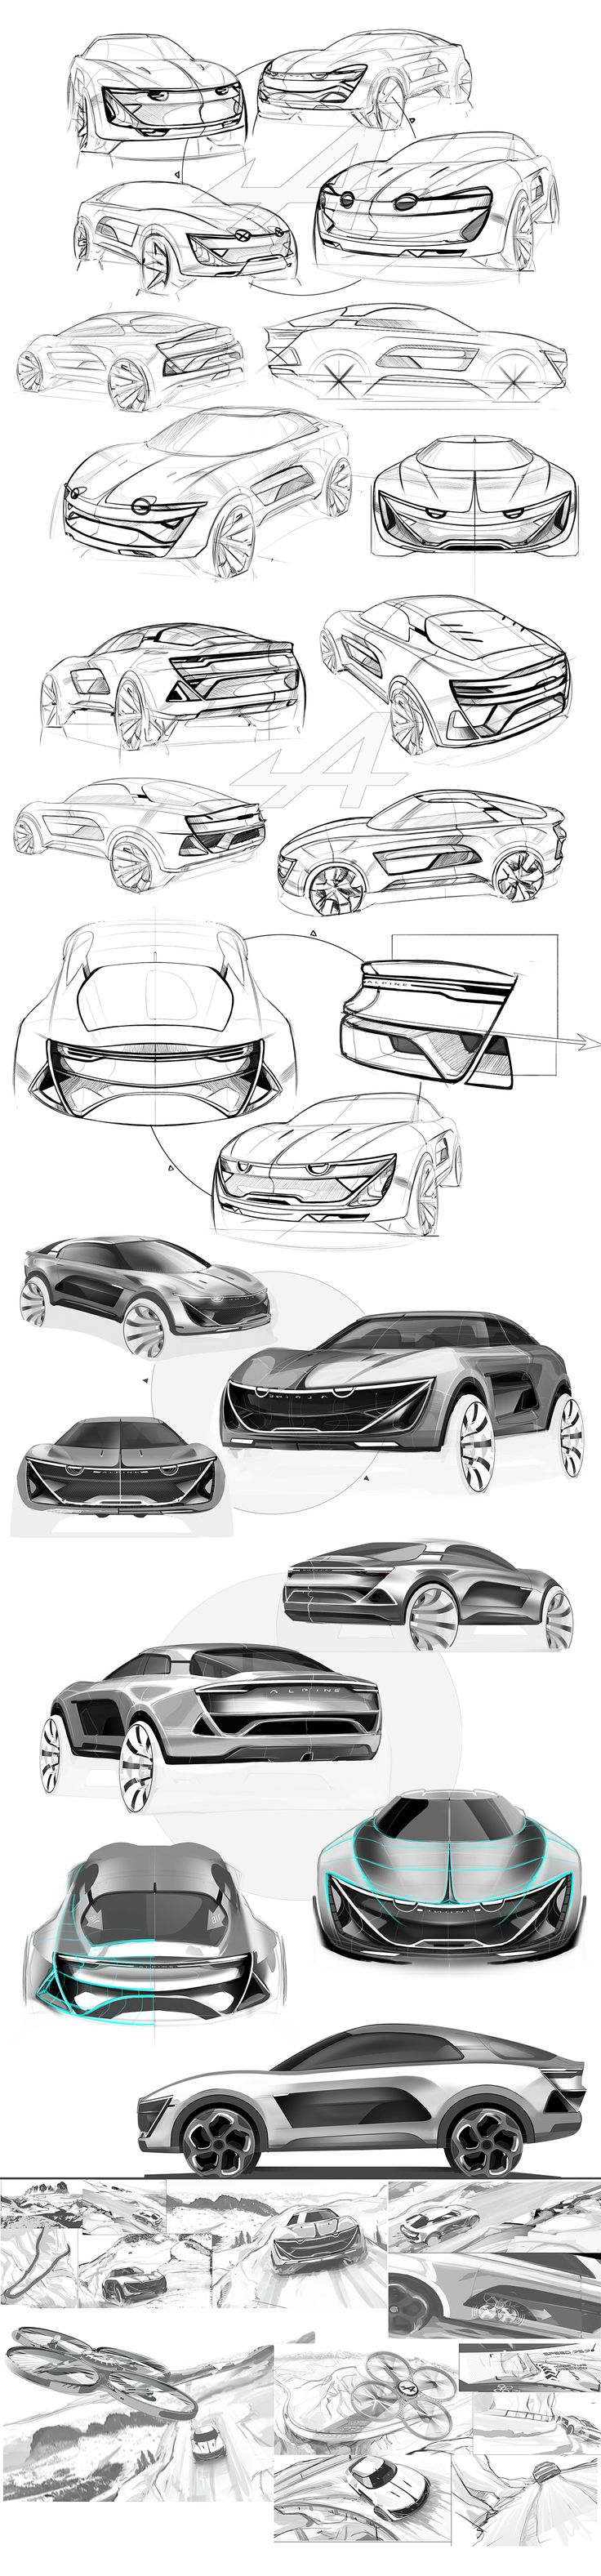 Alpine SUV 2025 on Behance